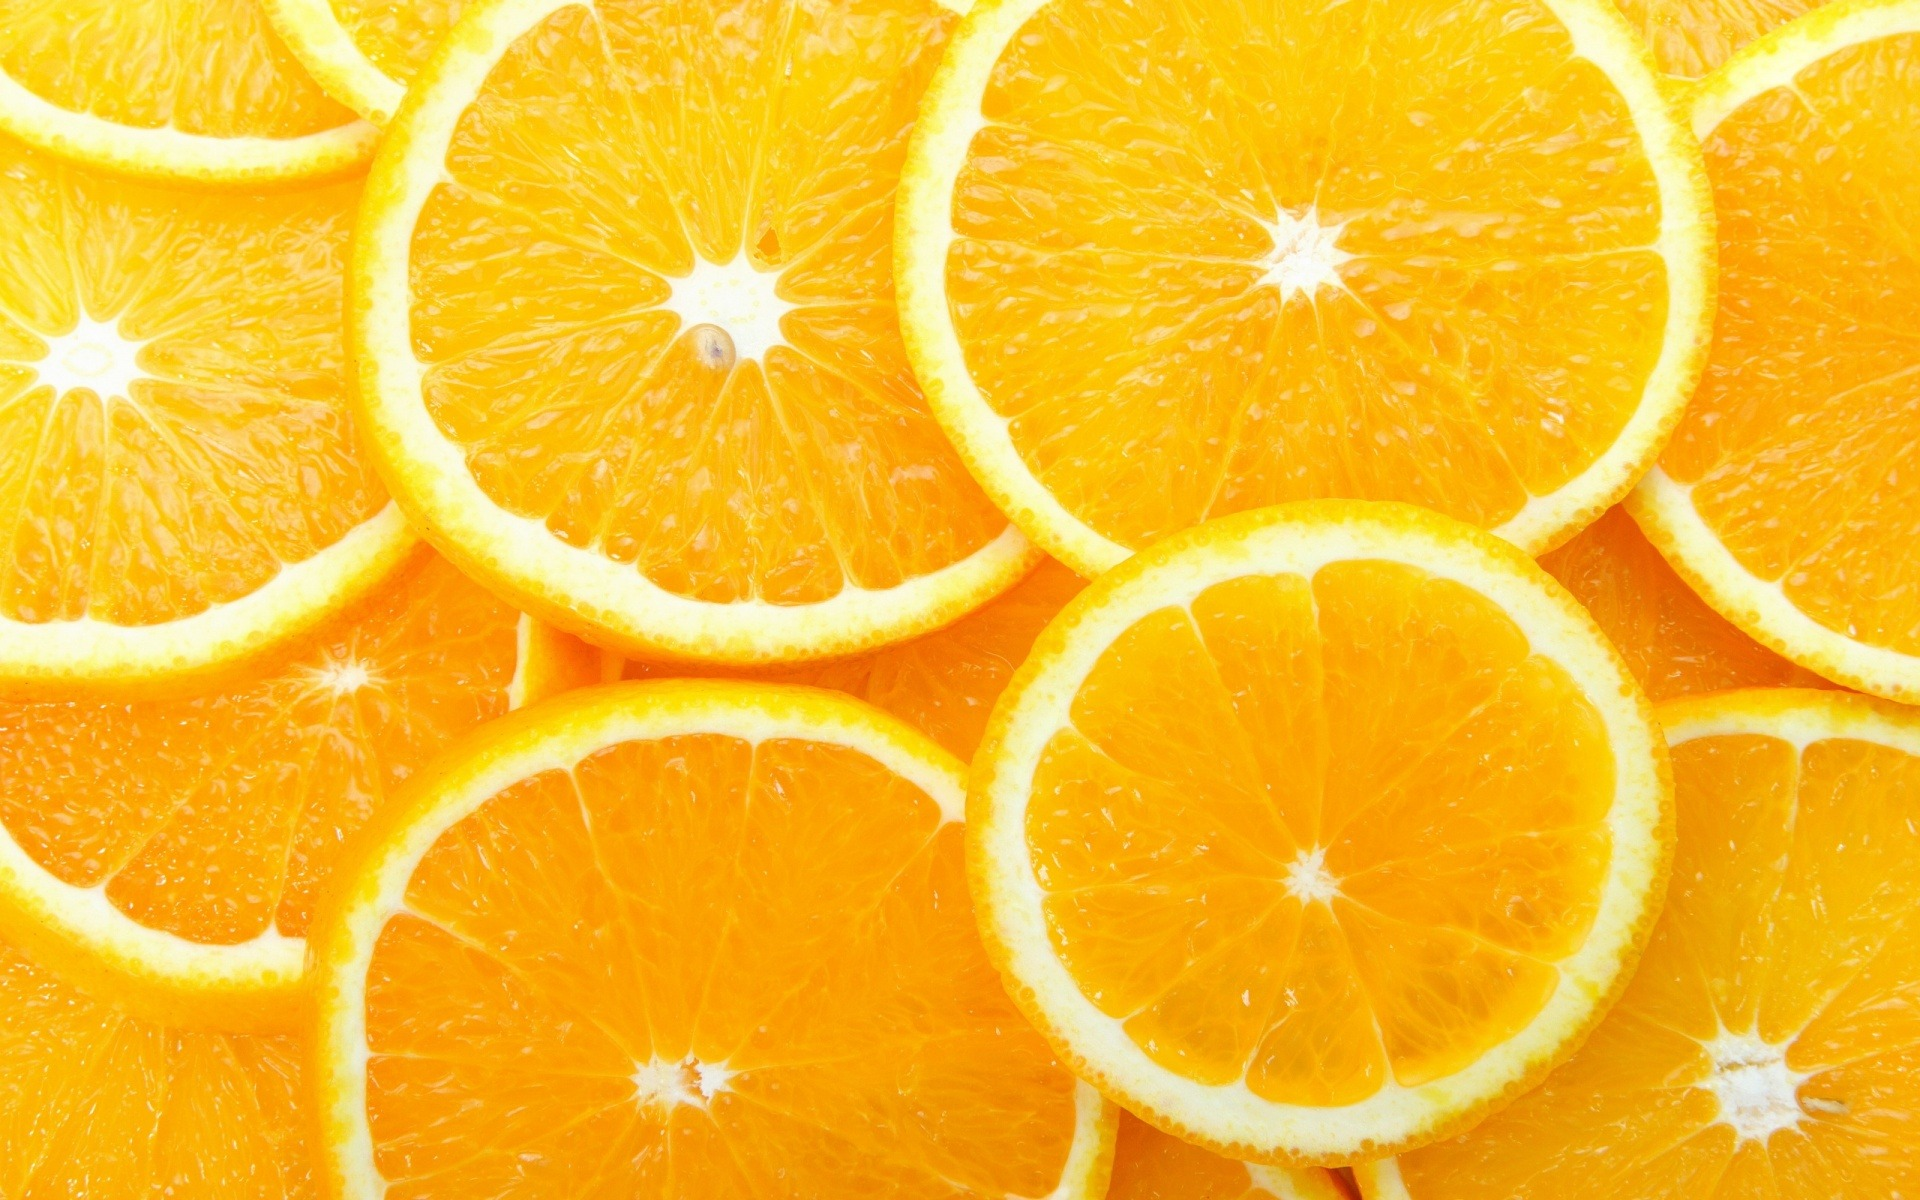 Wallpaper of fruits - Orange Slices Wallpaper Fruits Nature